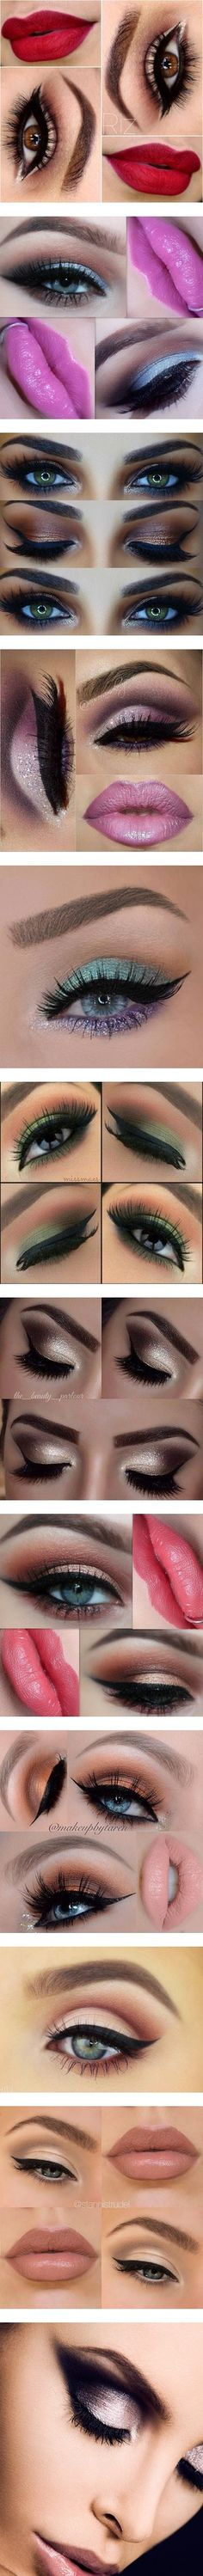 Eye Makeup Favs by emalenf on Polyvore featuring beauty products, makeup, lip makeup, lipstick, eyes, hair and makeup, make-up 2, women, bath & beauty and grey